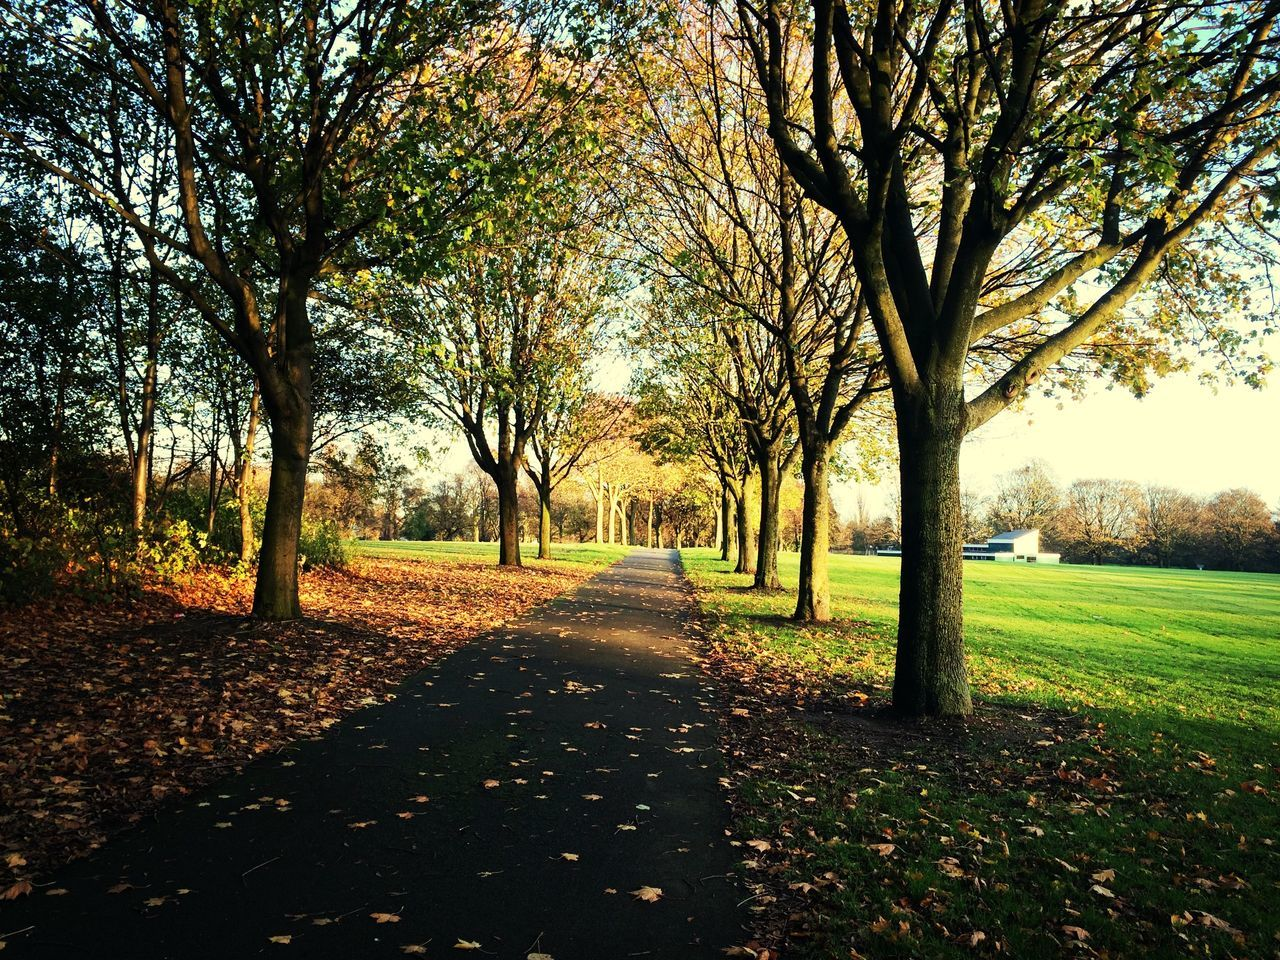 tree, nature, scenics, tranquility, tranquil scene, diminishing perspective, landscape, the way forward, beauty in nature, autumn, outdoors, road, day, field, no people, grass, branch, sky